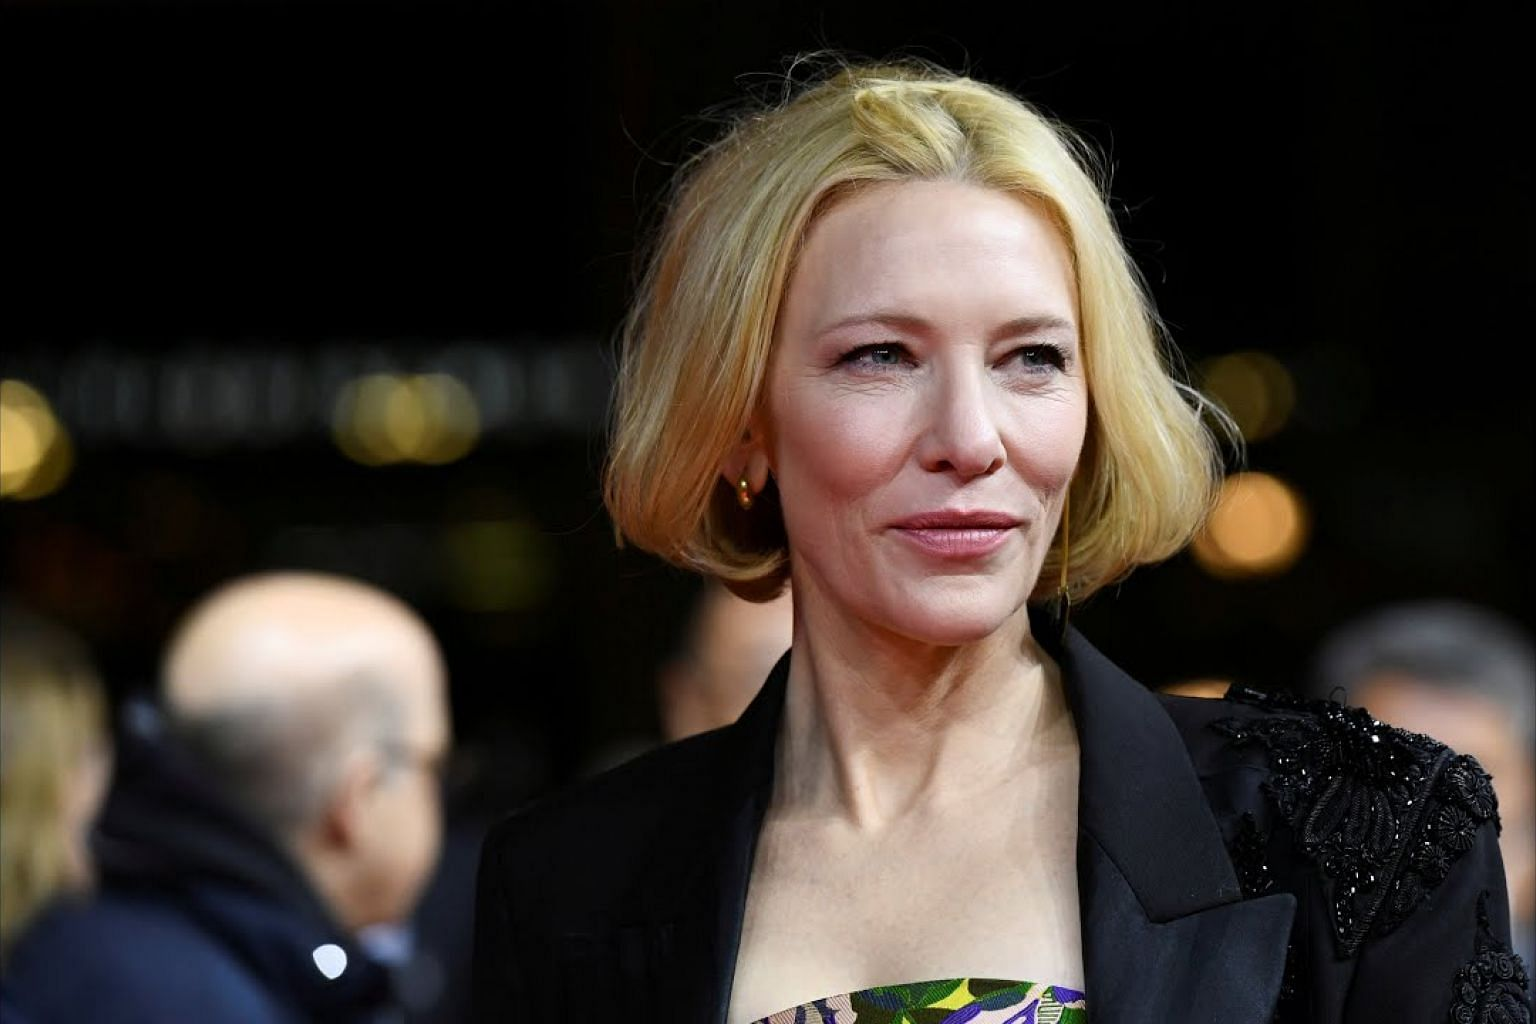 Cate Blanchett reveals 'a bit of a chainsaw accident'